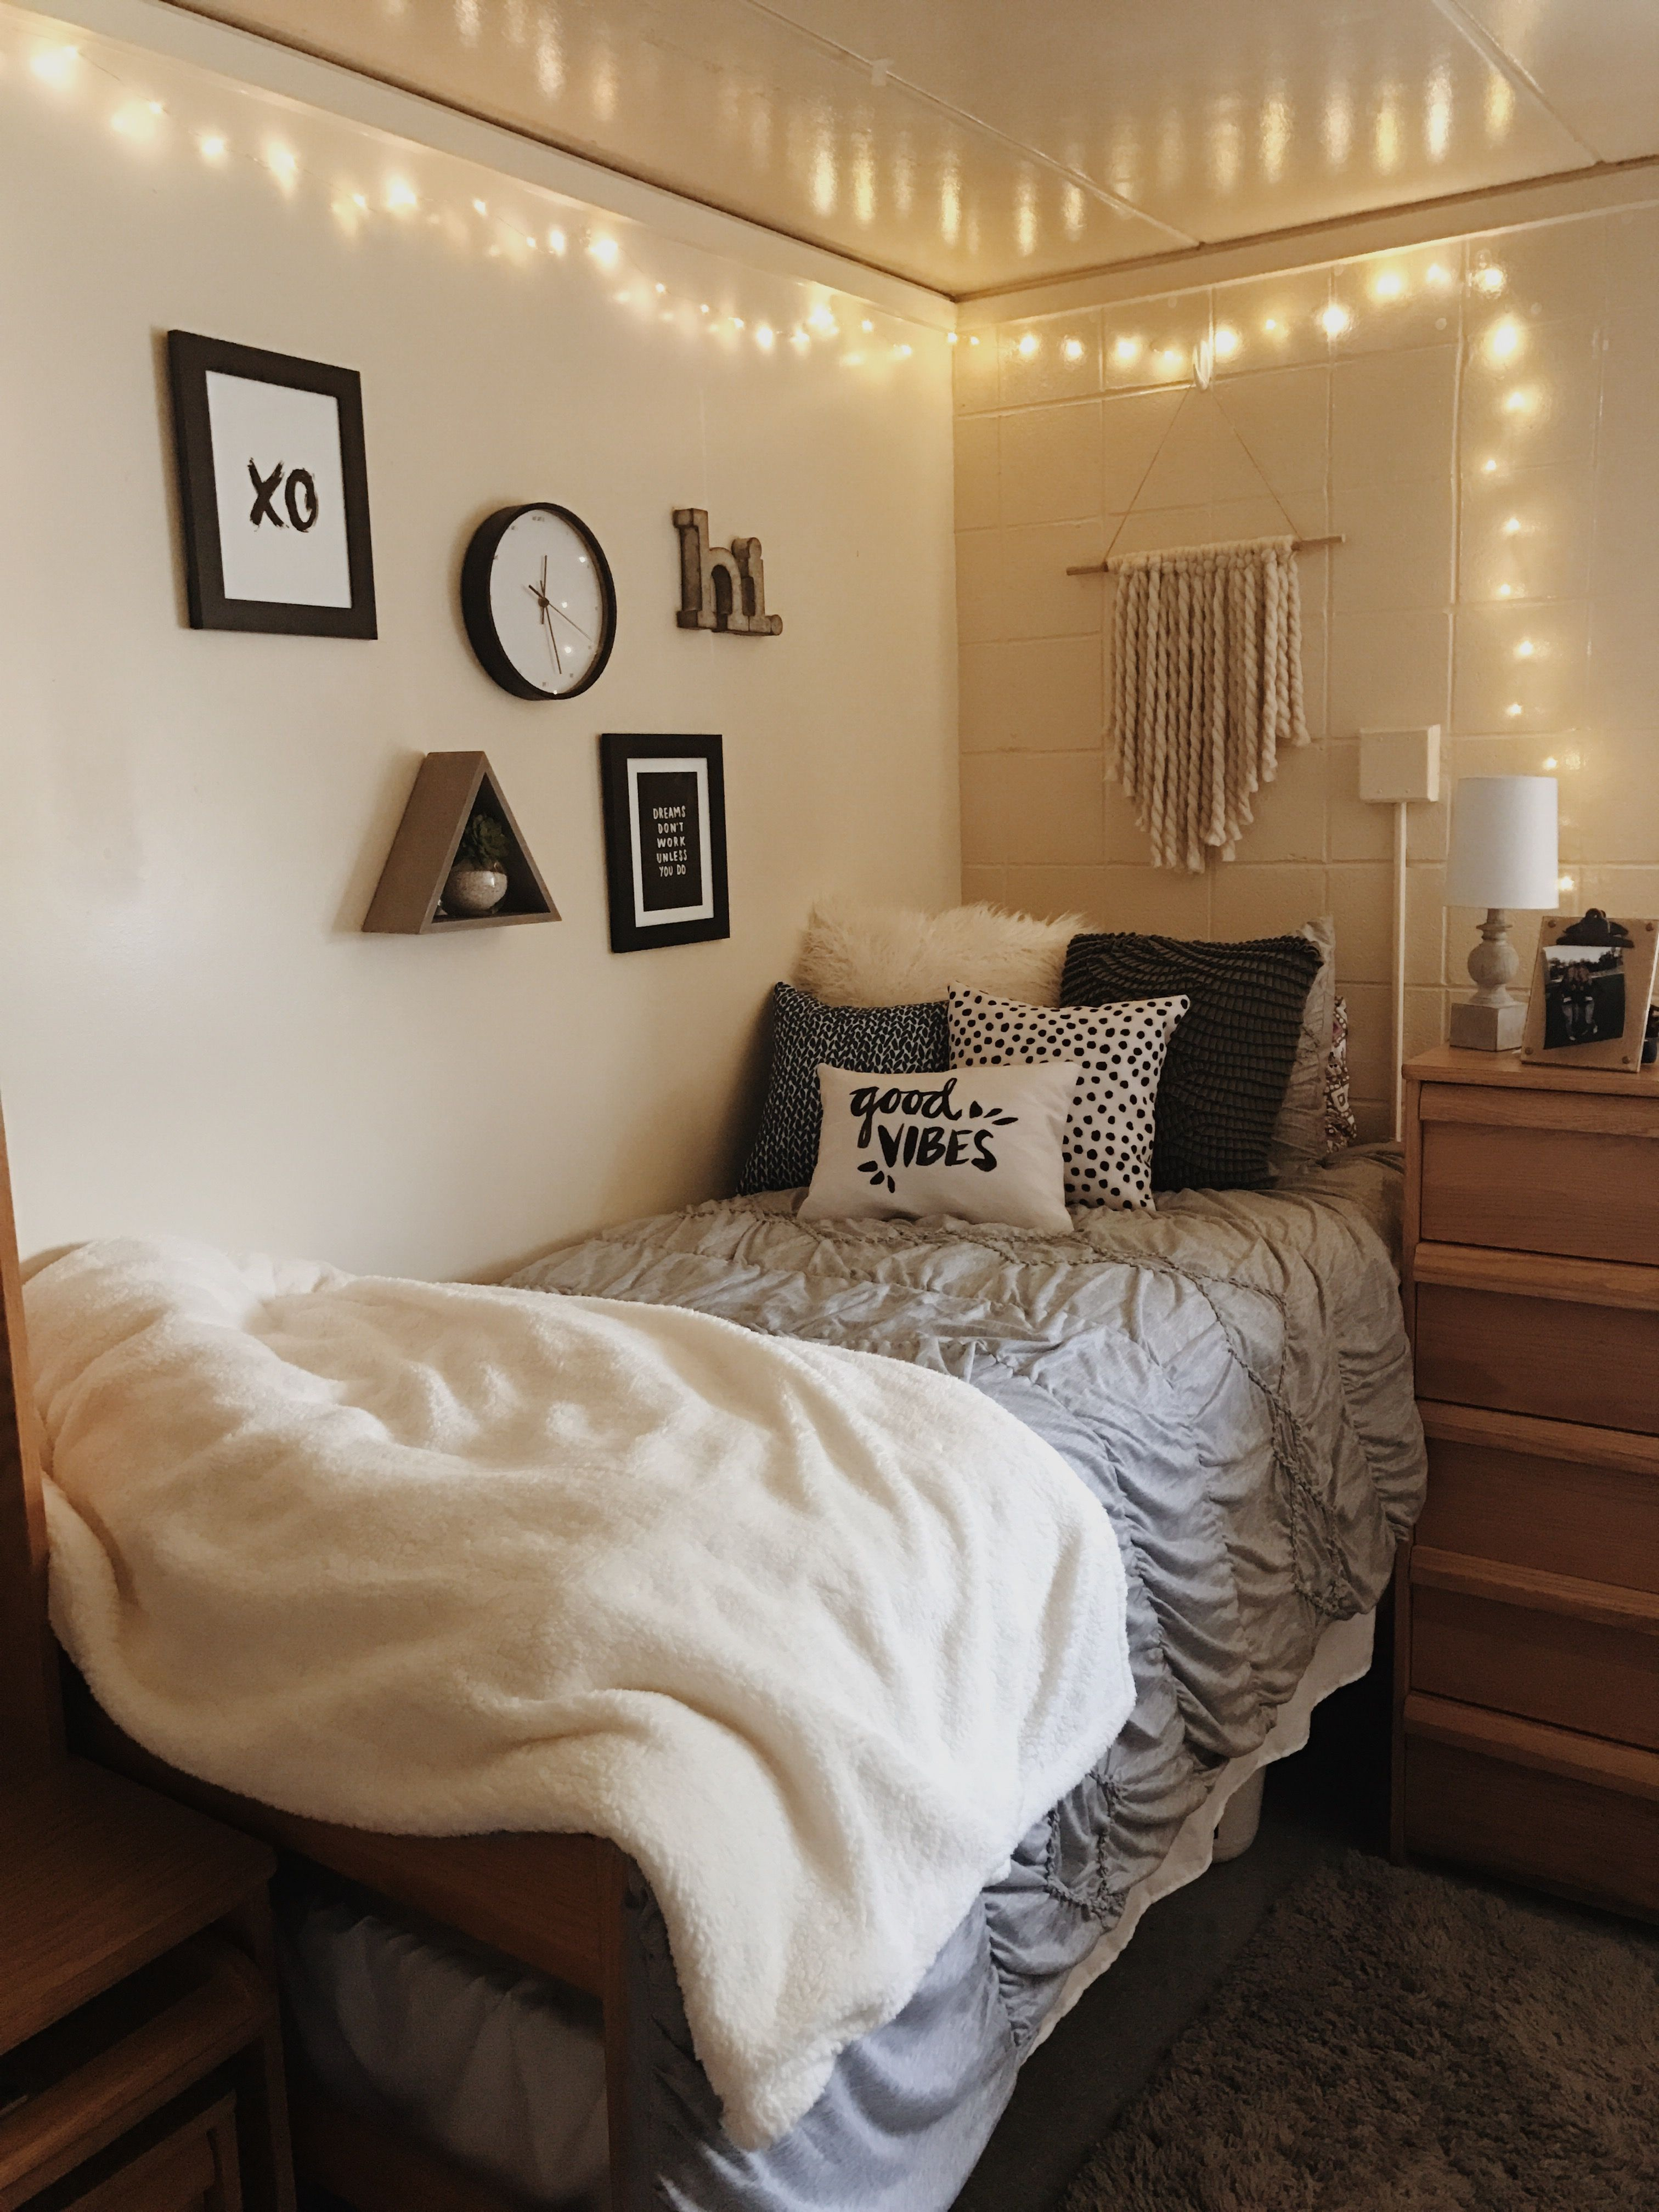 Small Dorm Room Ideas: Pin By Allison Koester On Cute Rooms